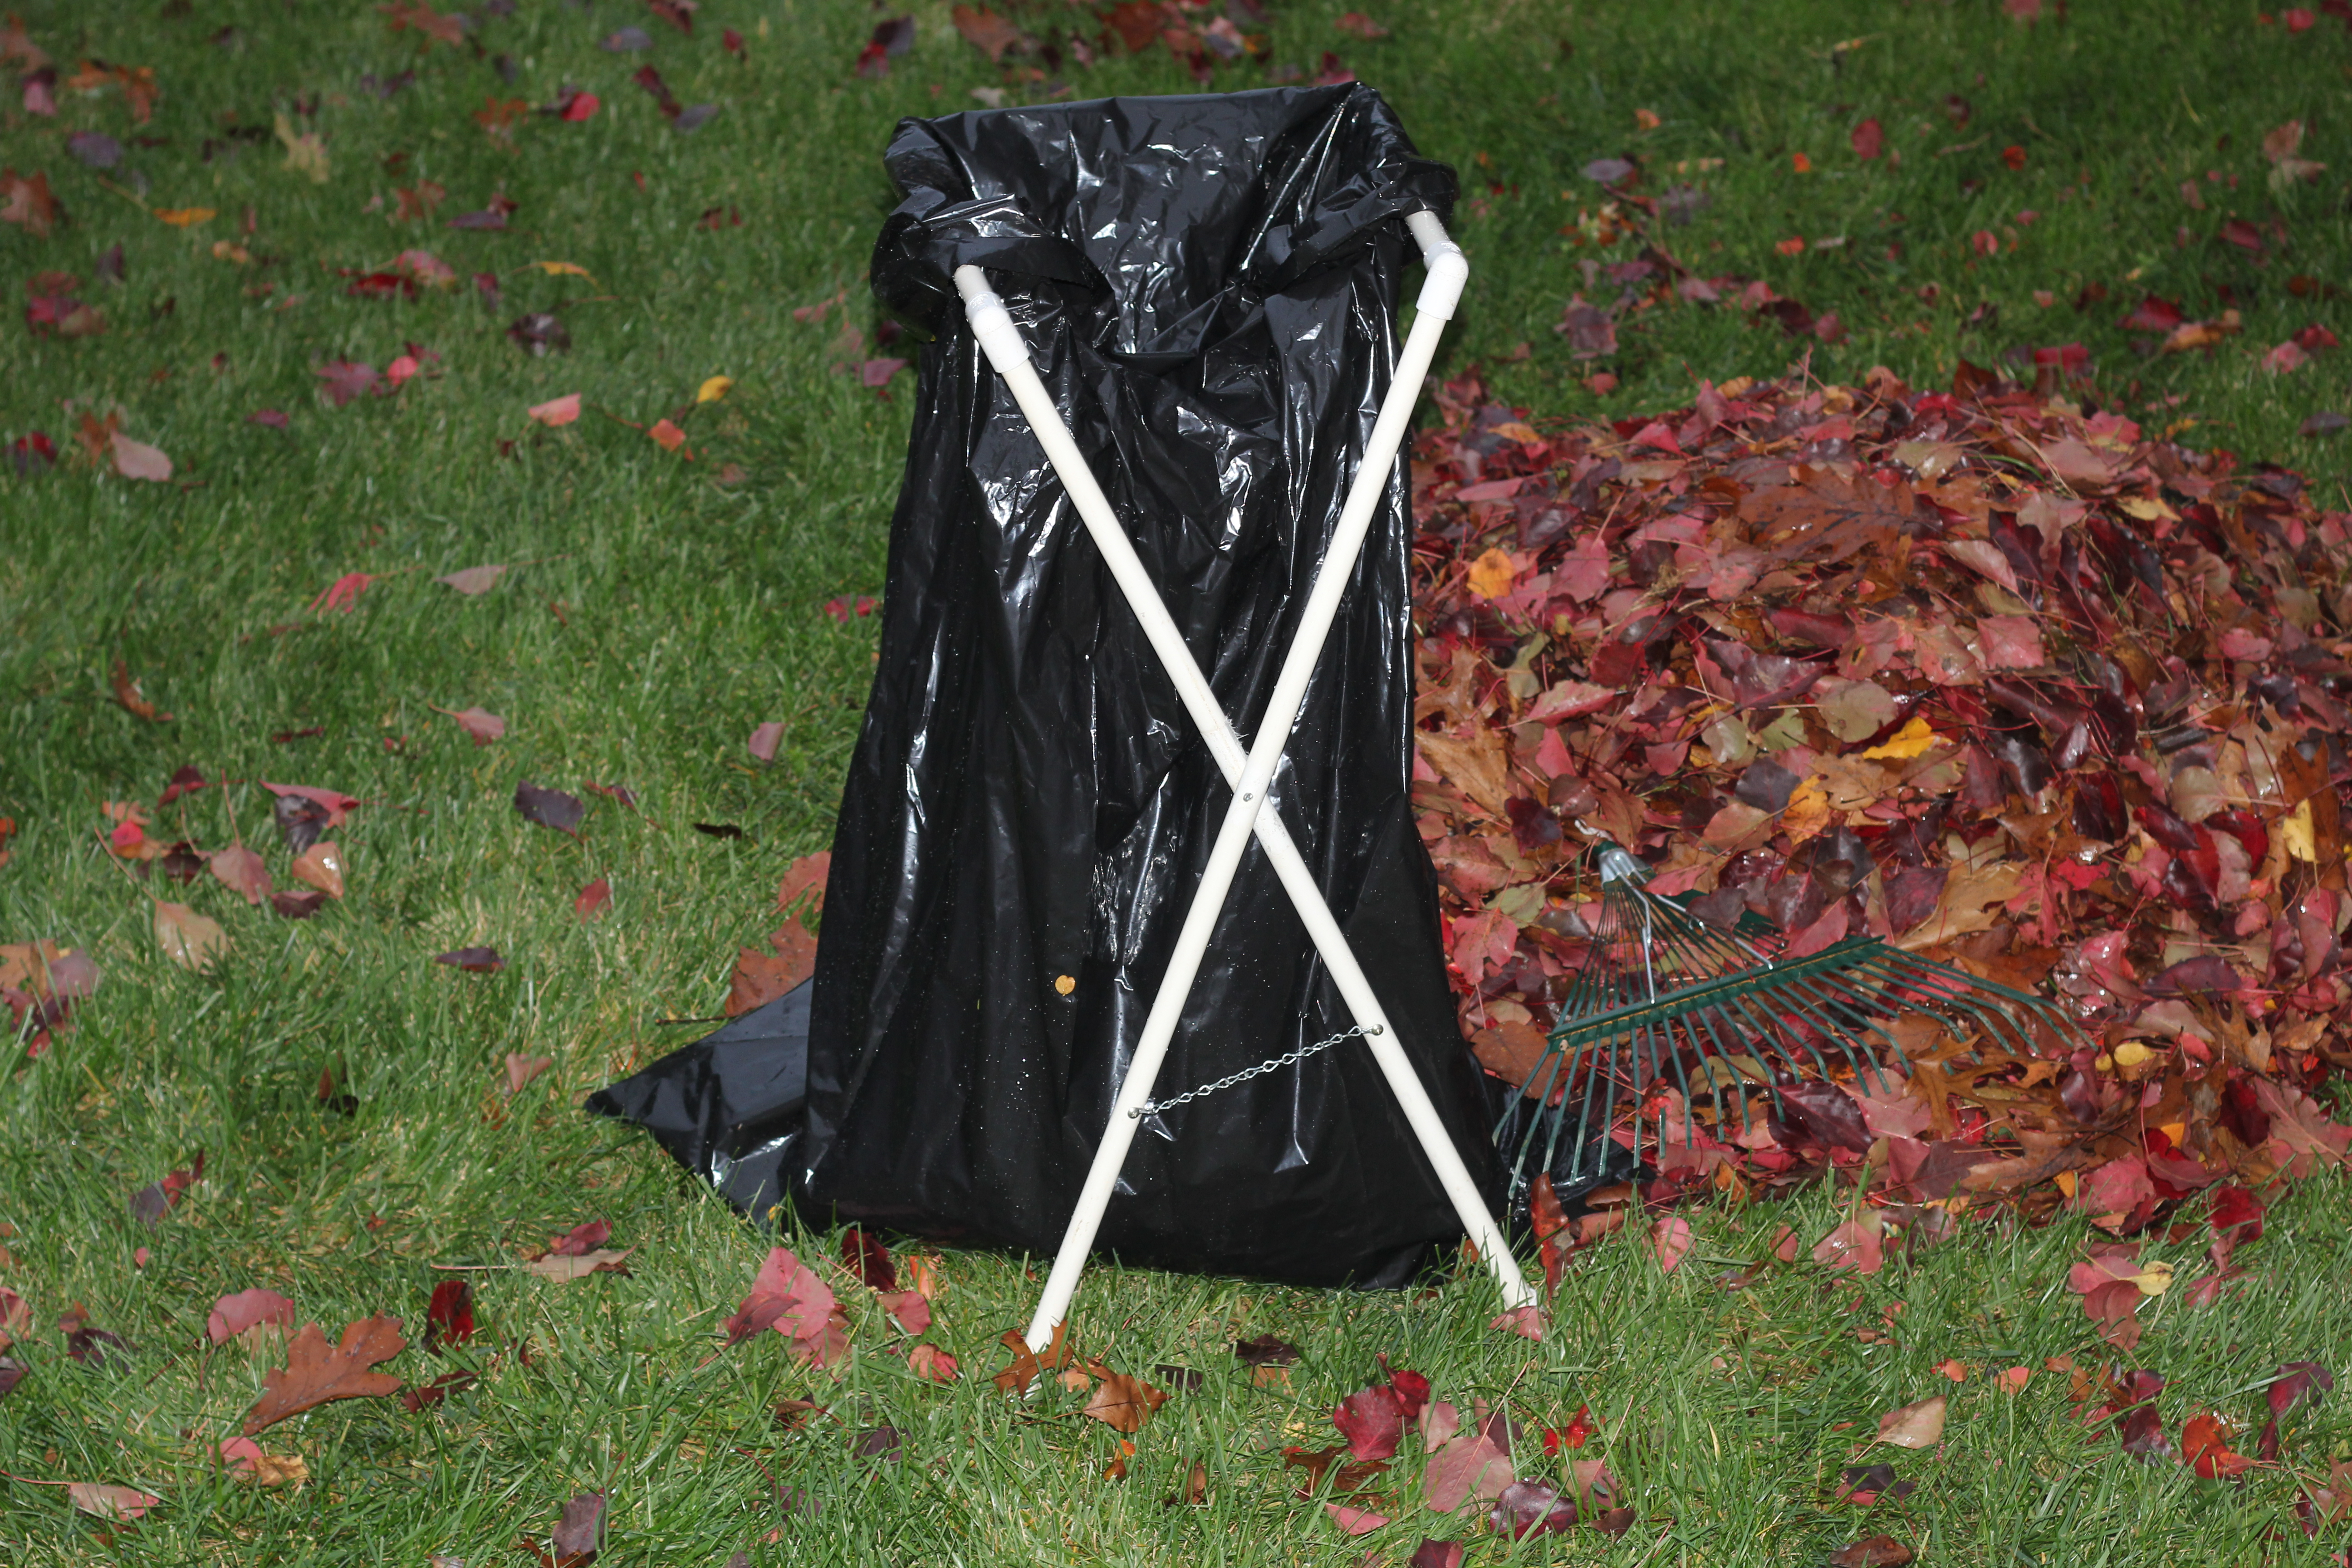 Picture of Folding PVC Lawn and Leaf Bag Holder